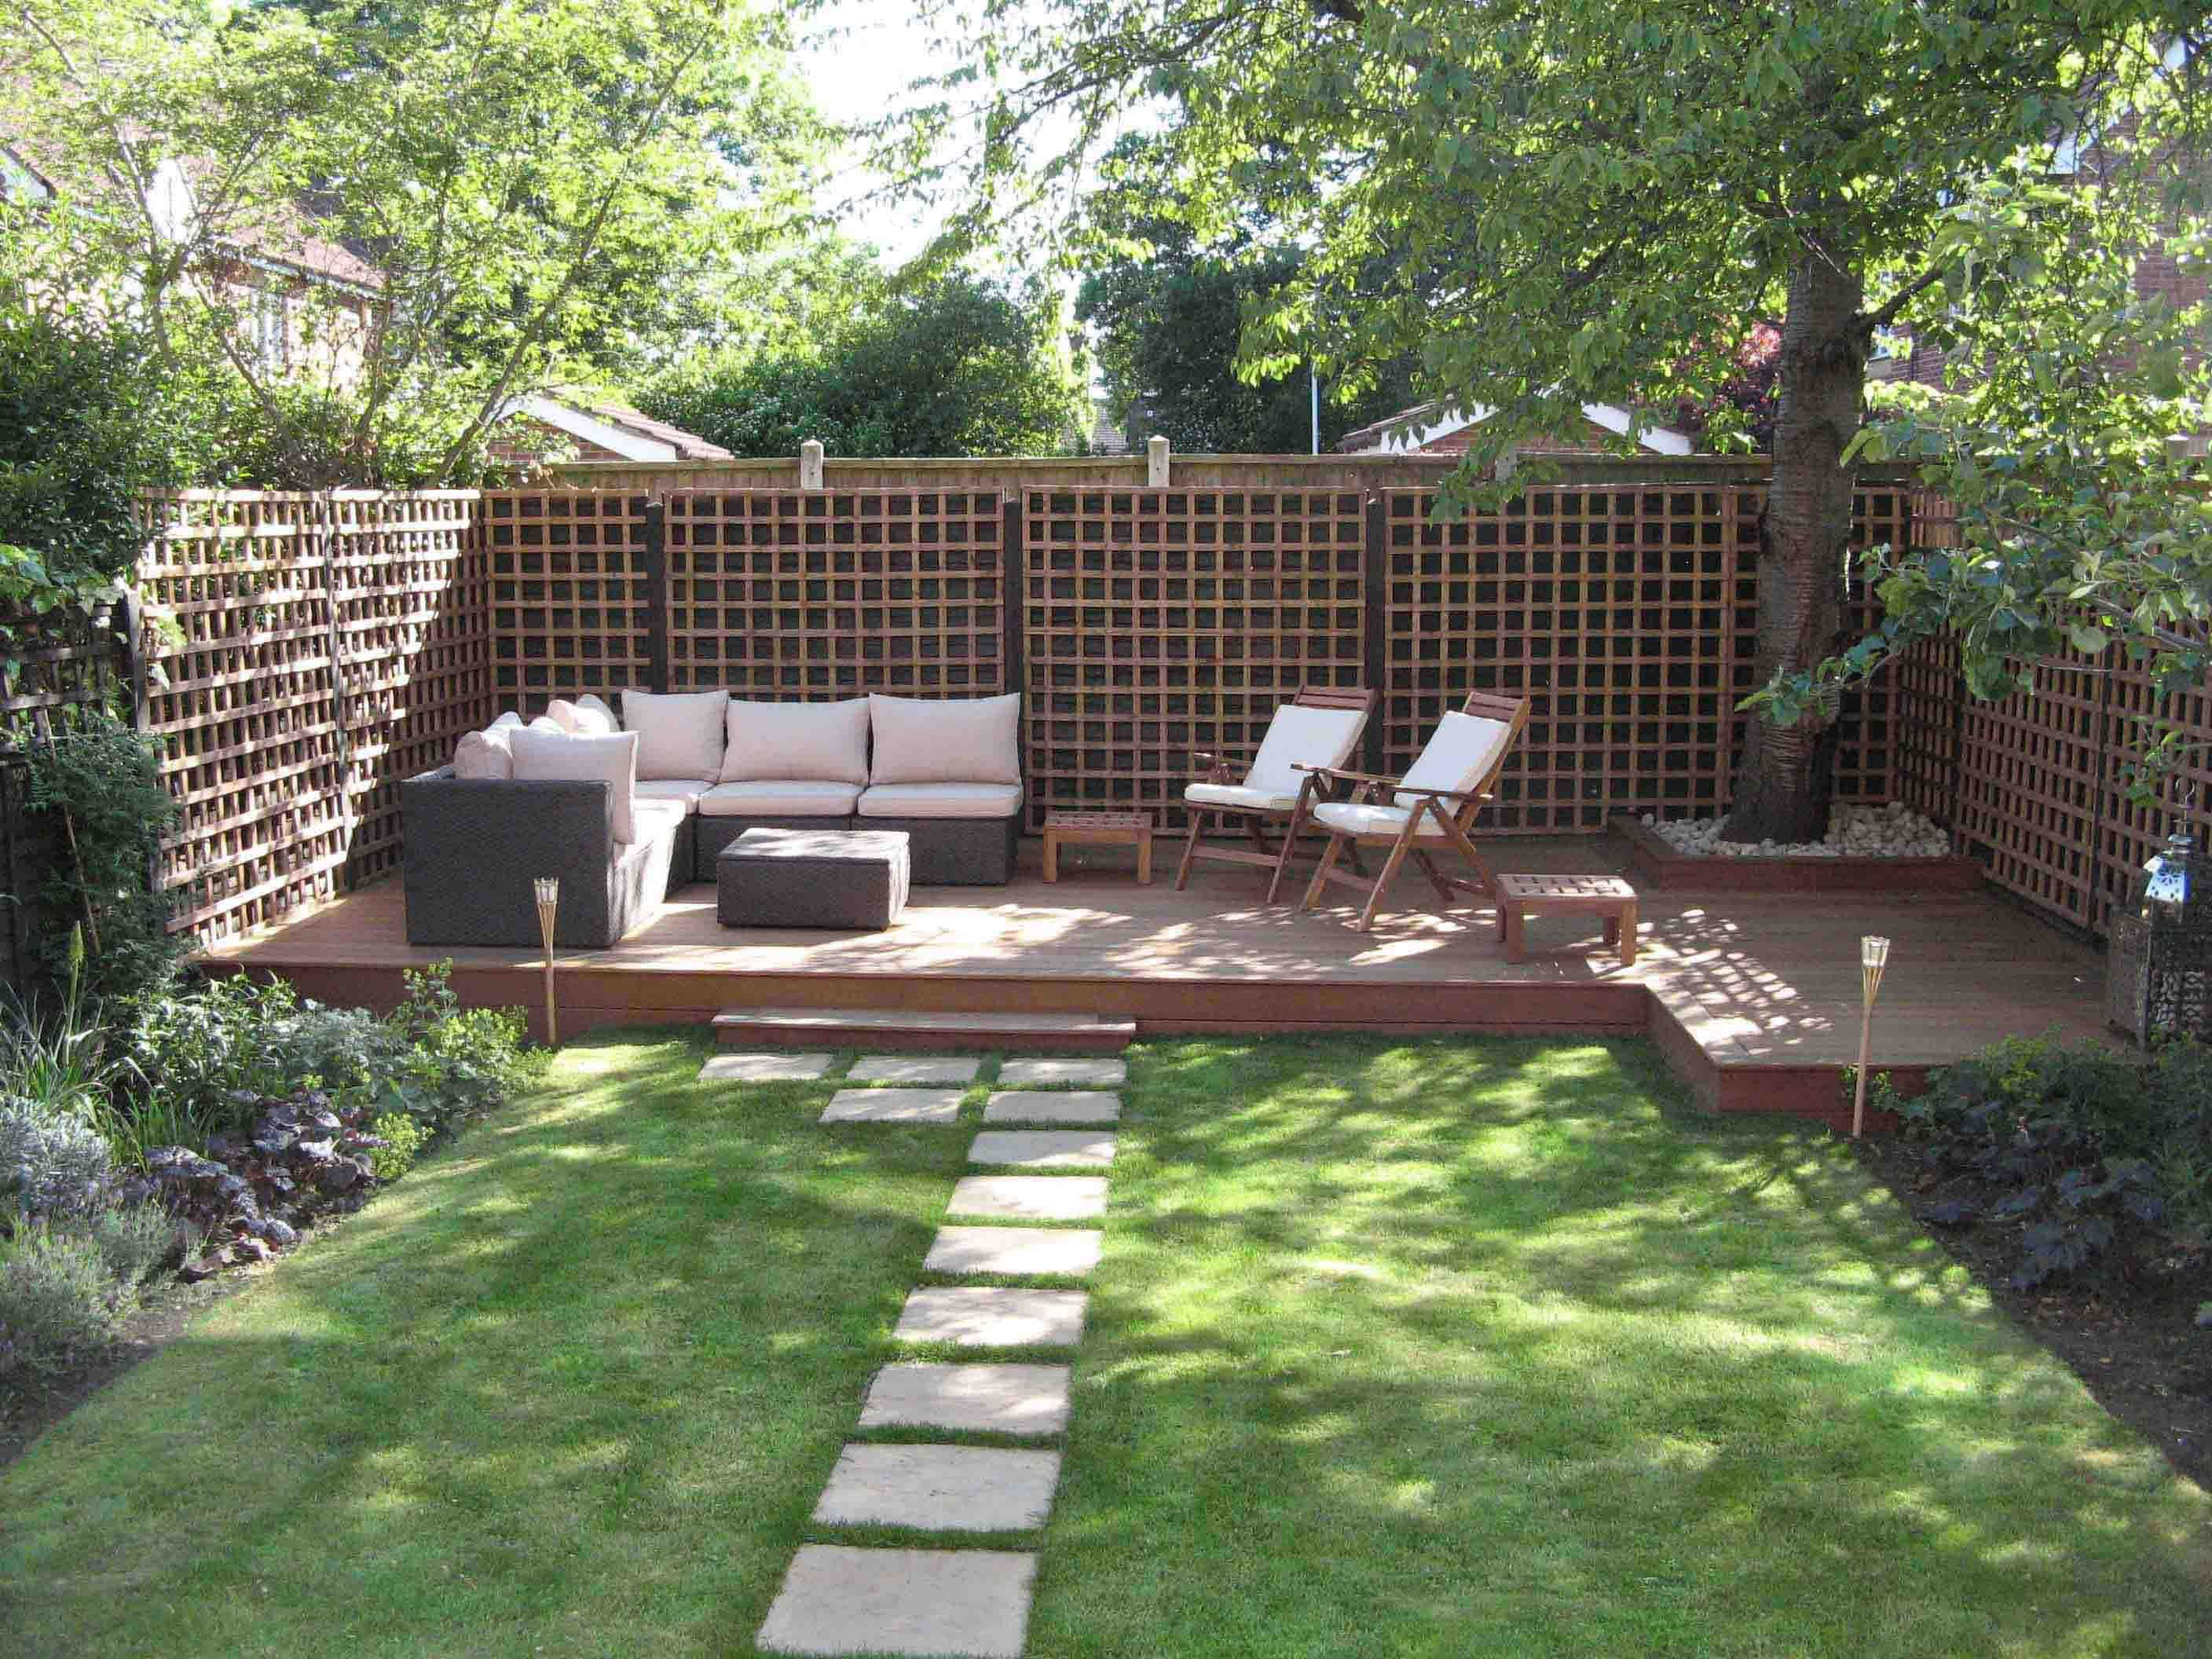 25 landscape design for small spaces - Home And Garden Designs